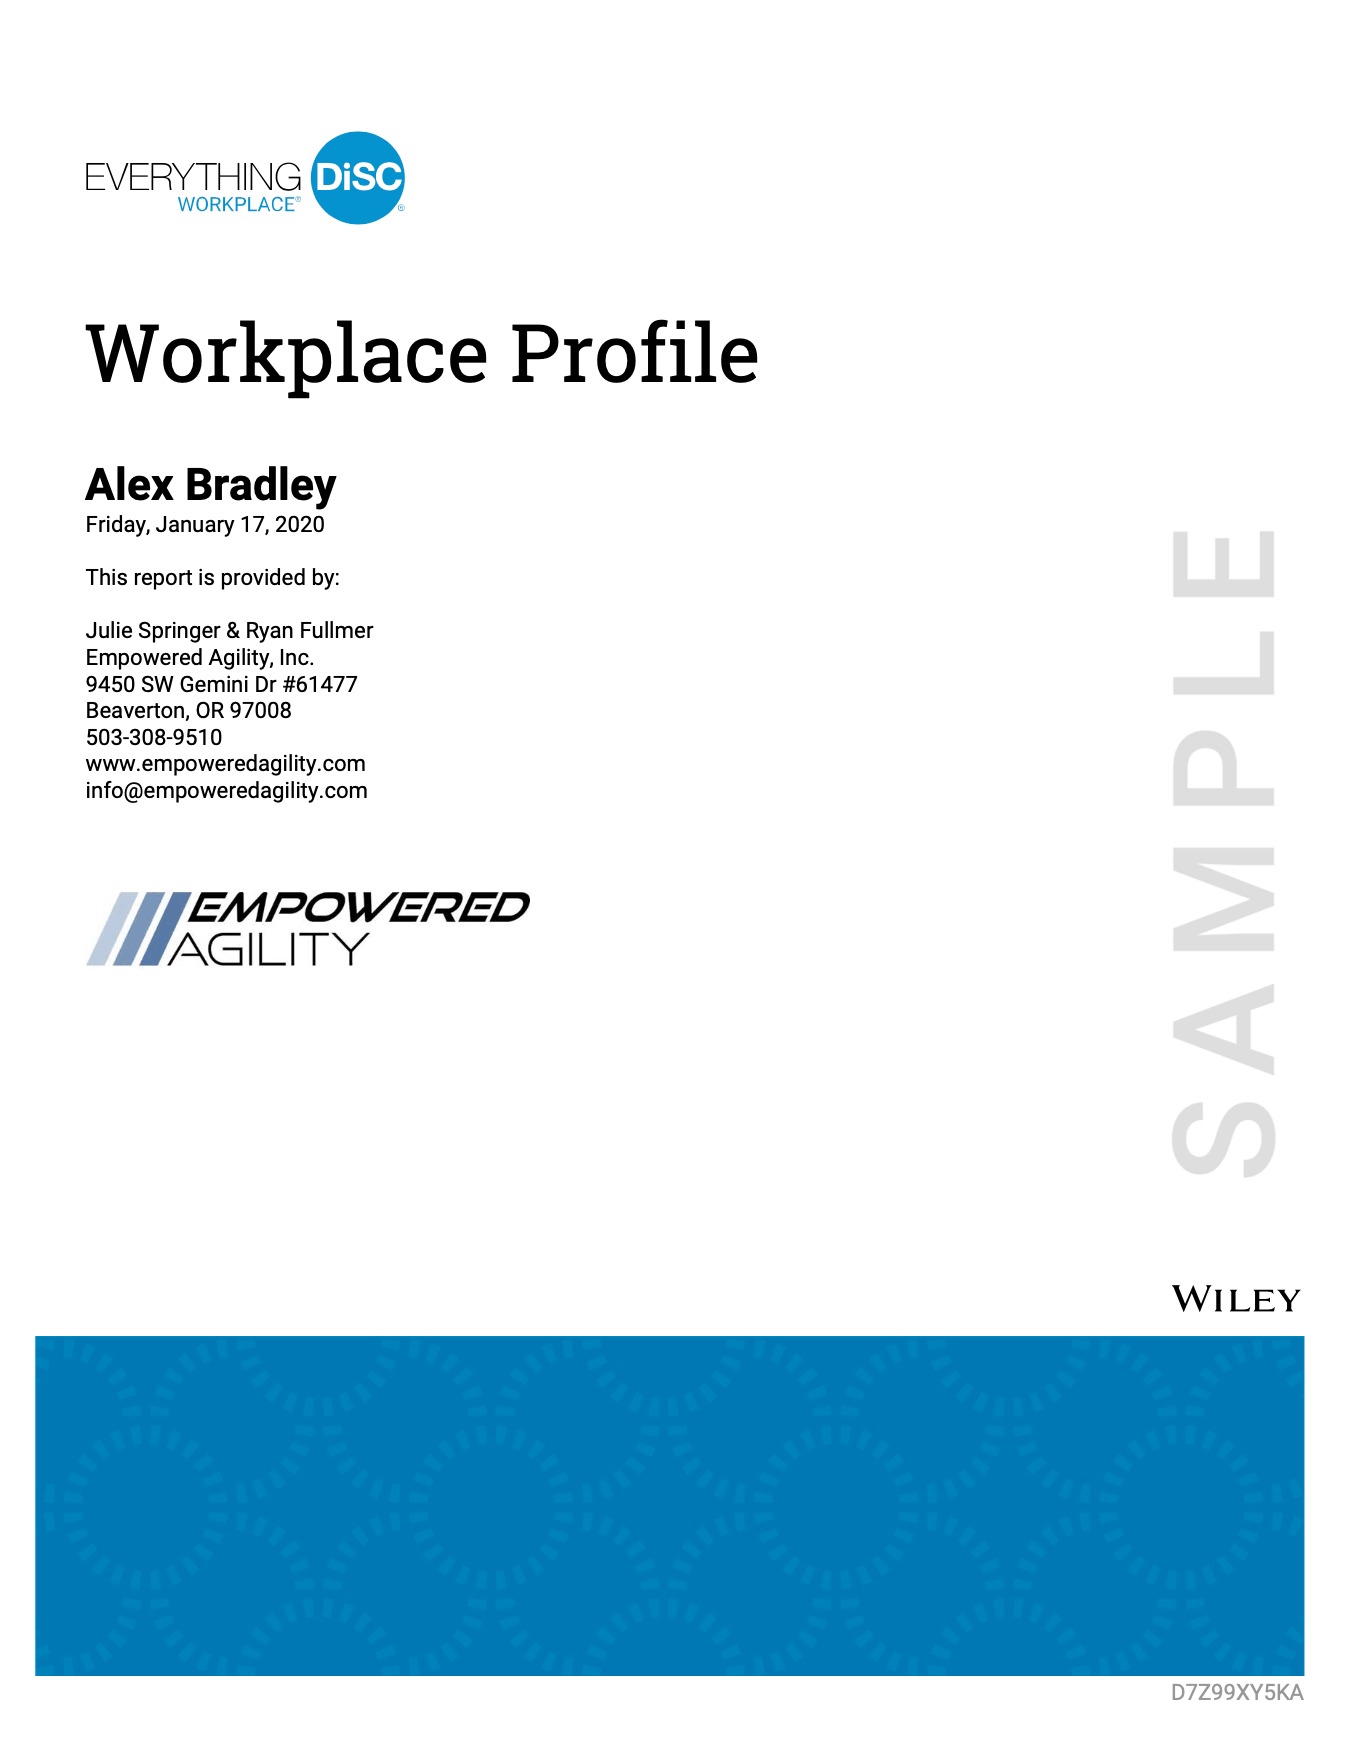 Everything Disc Workplace profile sample cover of report